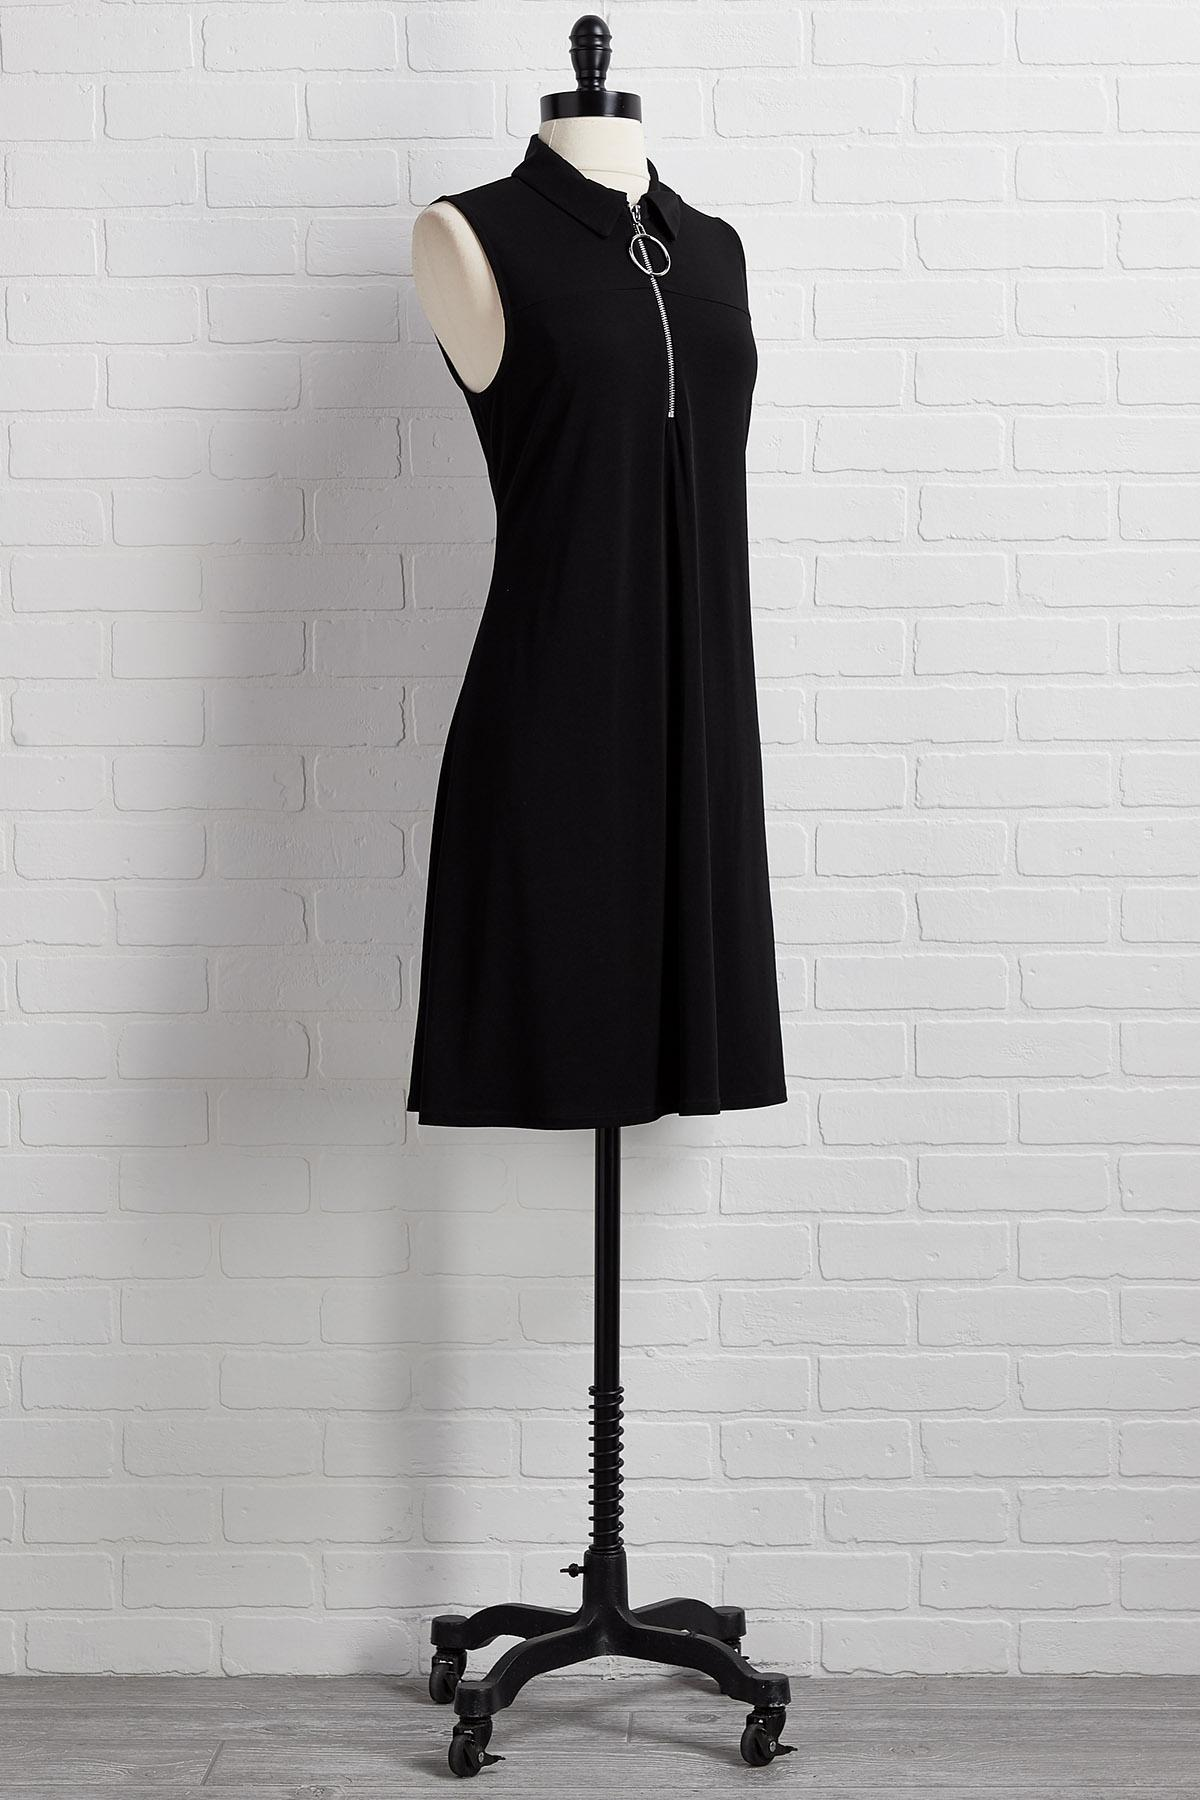 Our Zips Are Sealed Dress